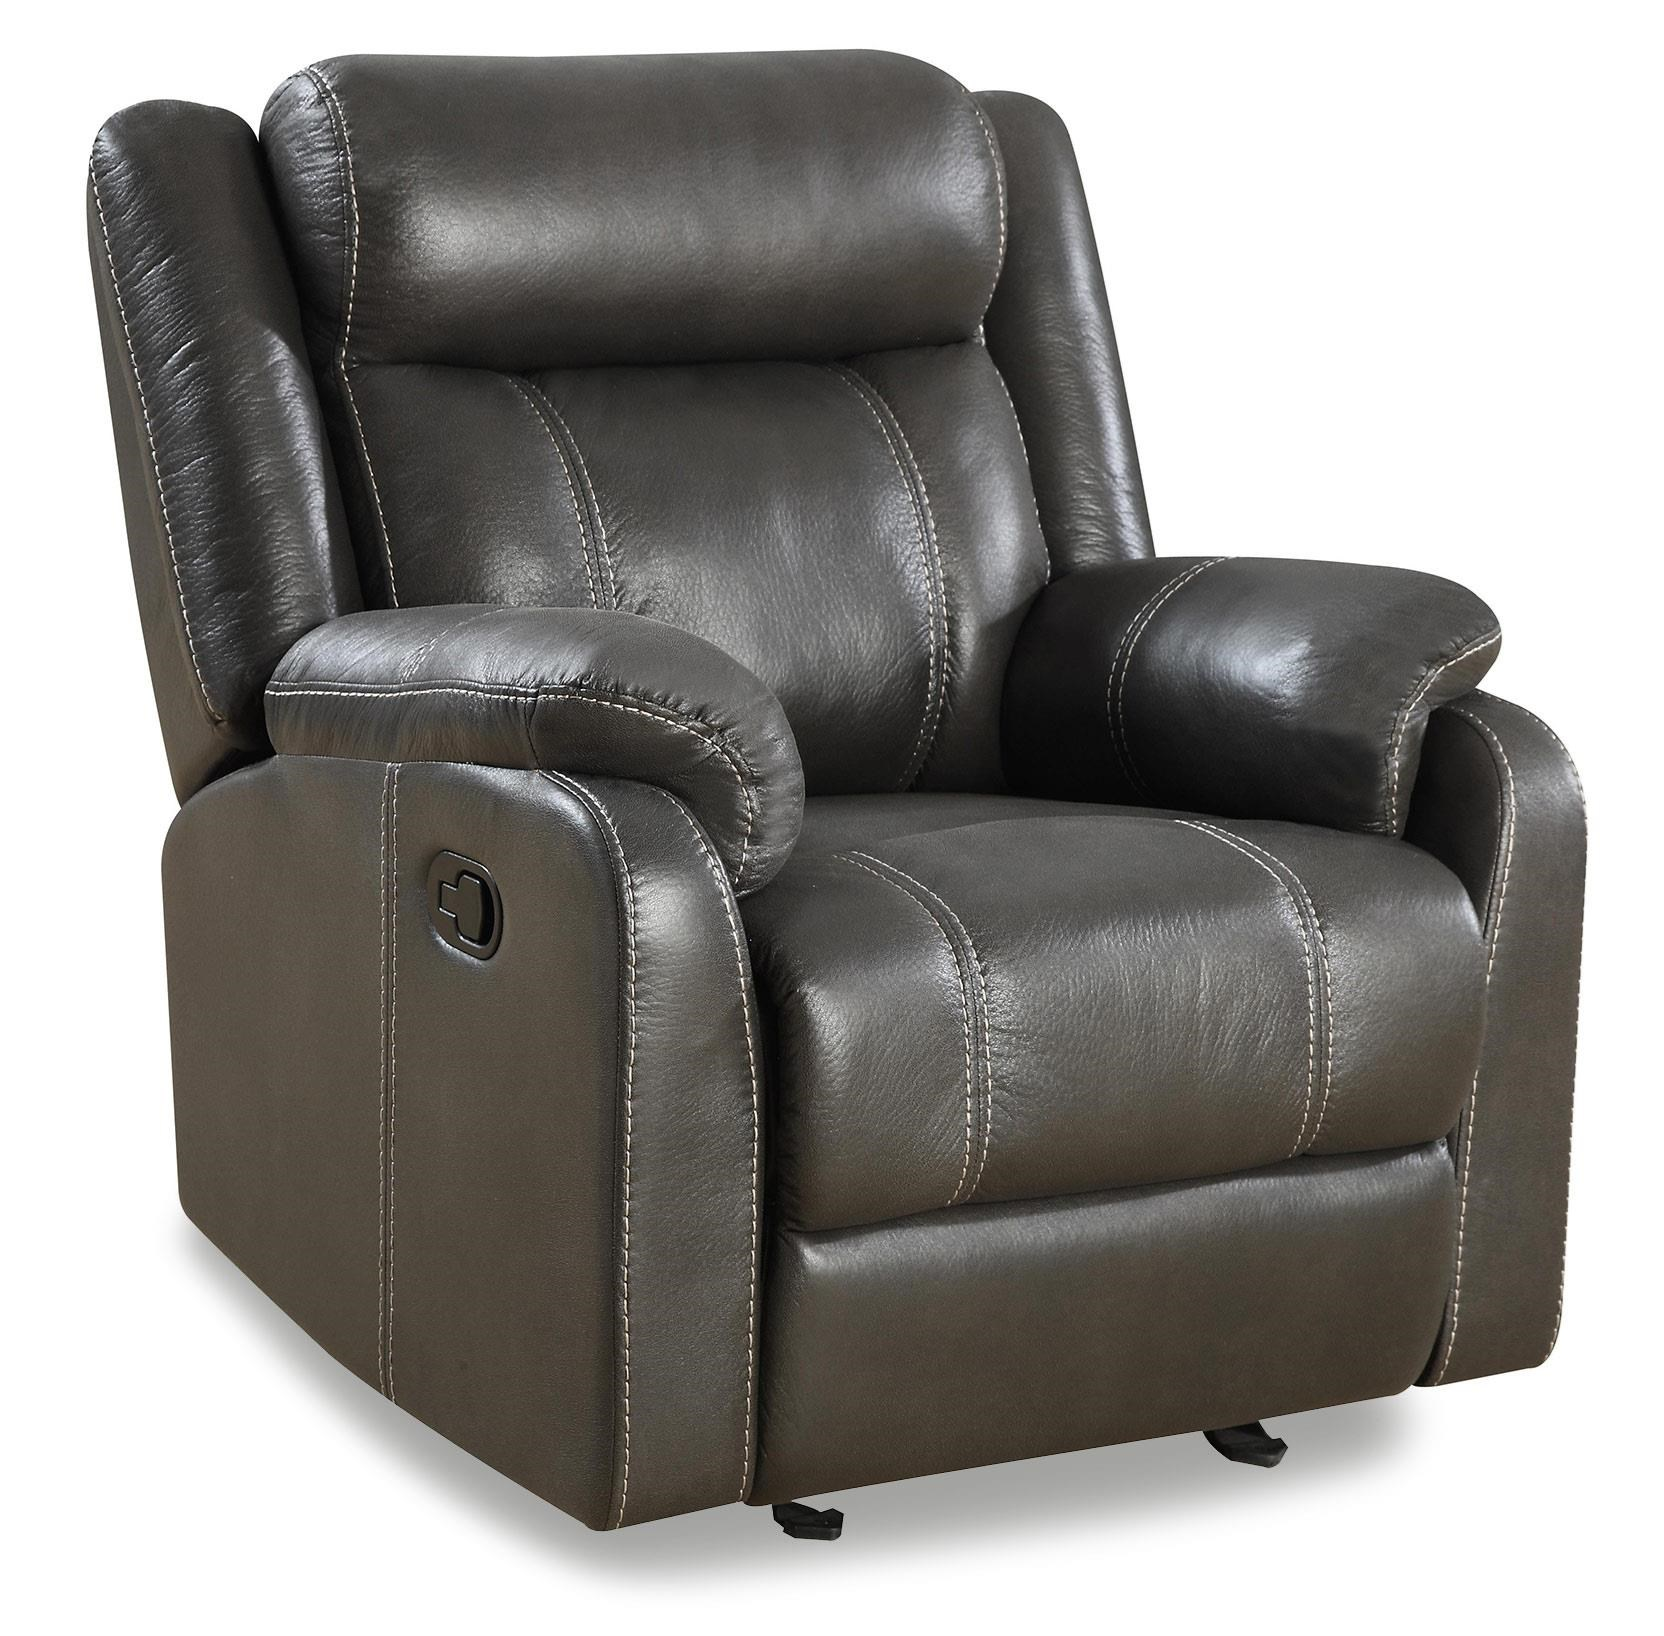 glider recliner chair spiderman table and chairs dunelm valor casual gliding rotmans three way recliners